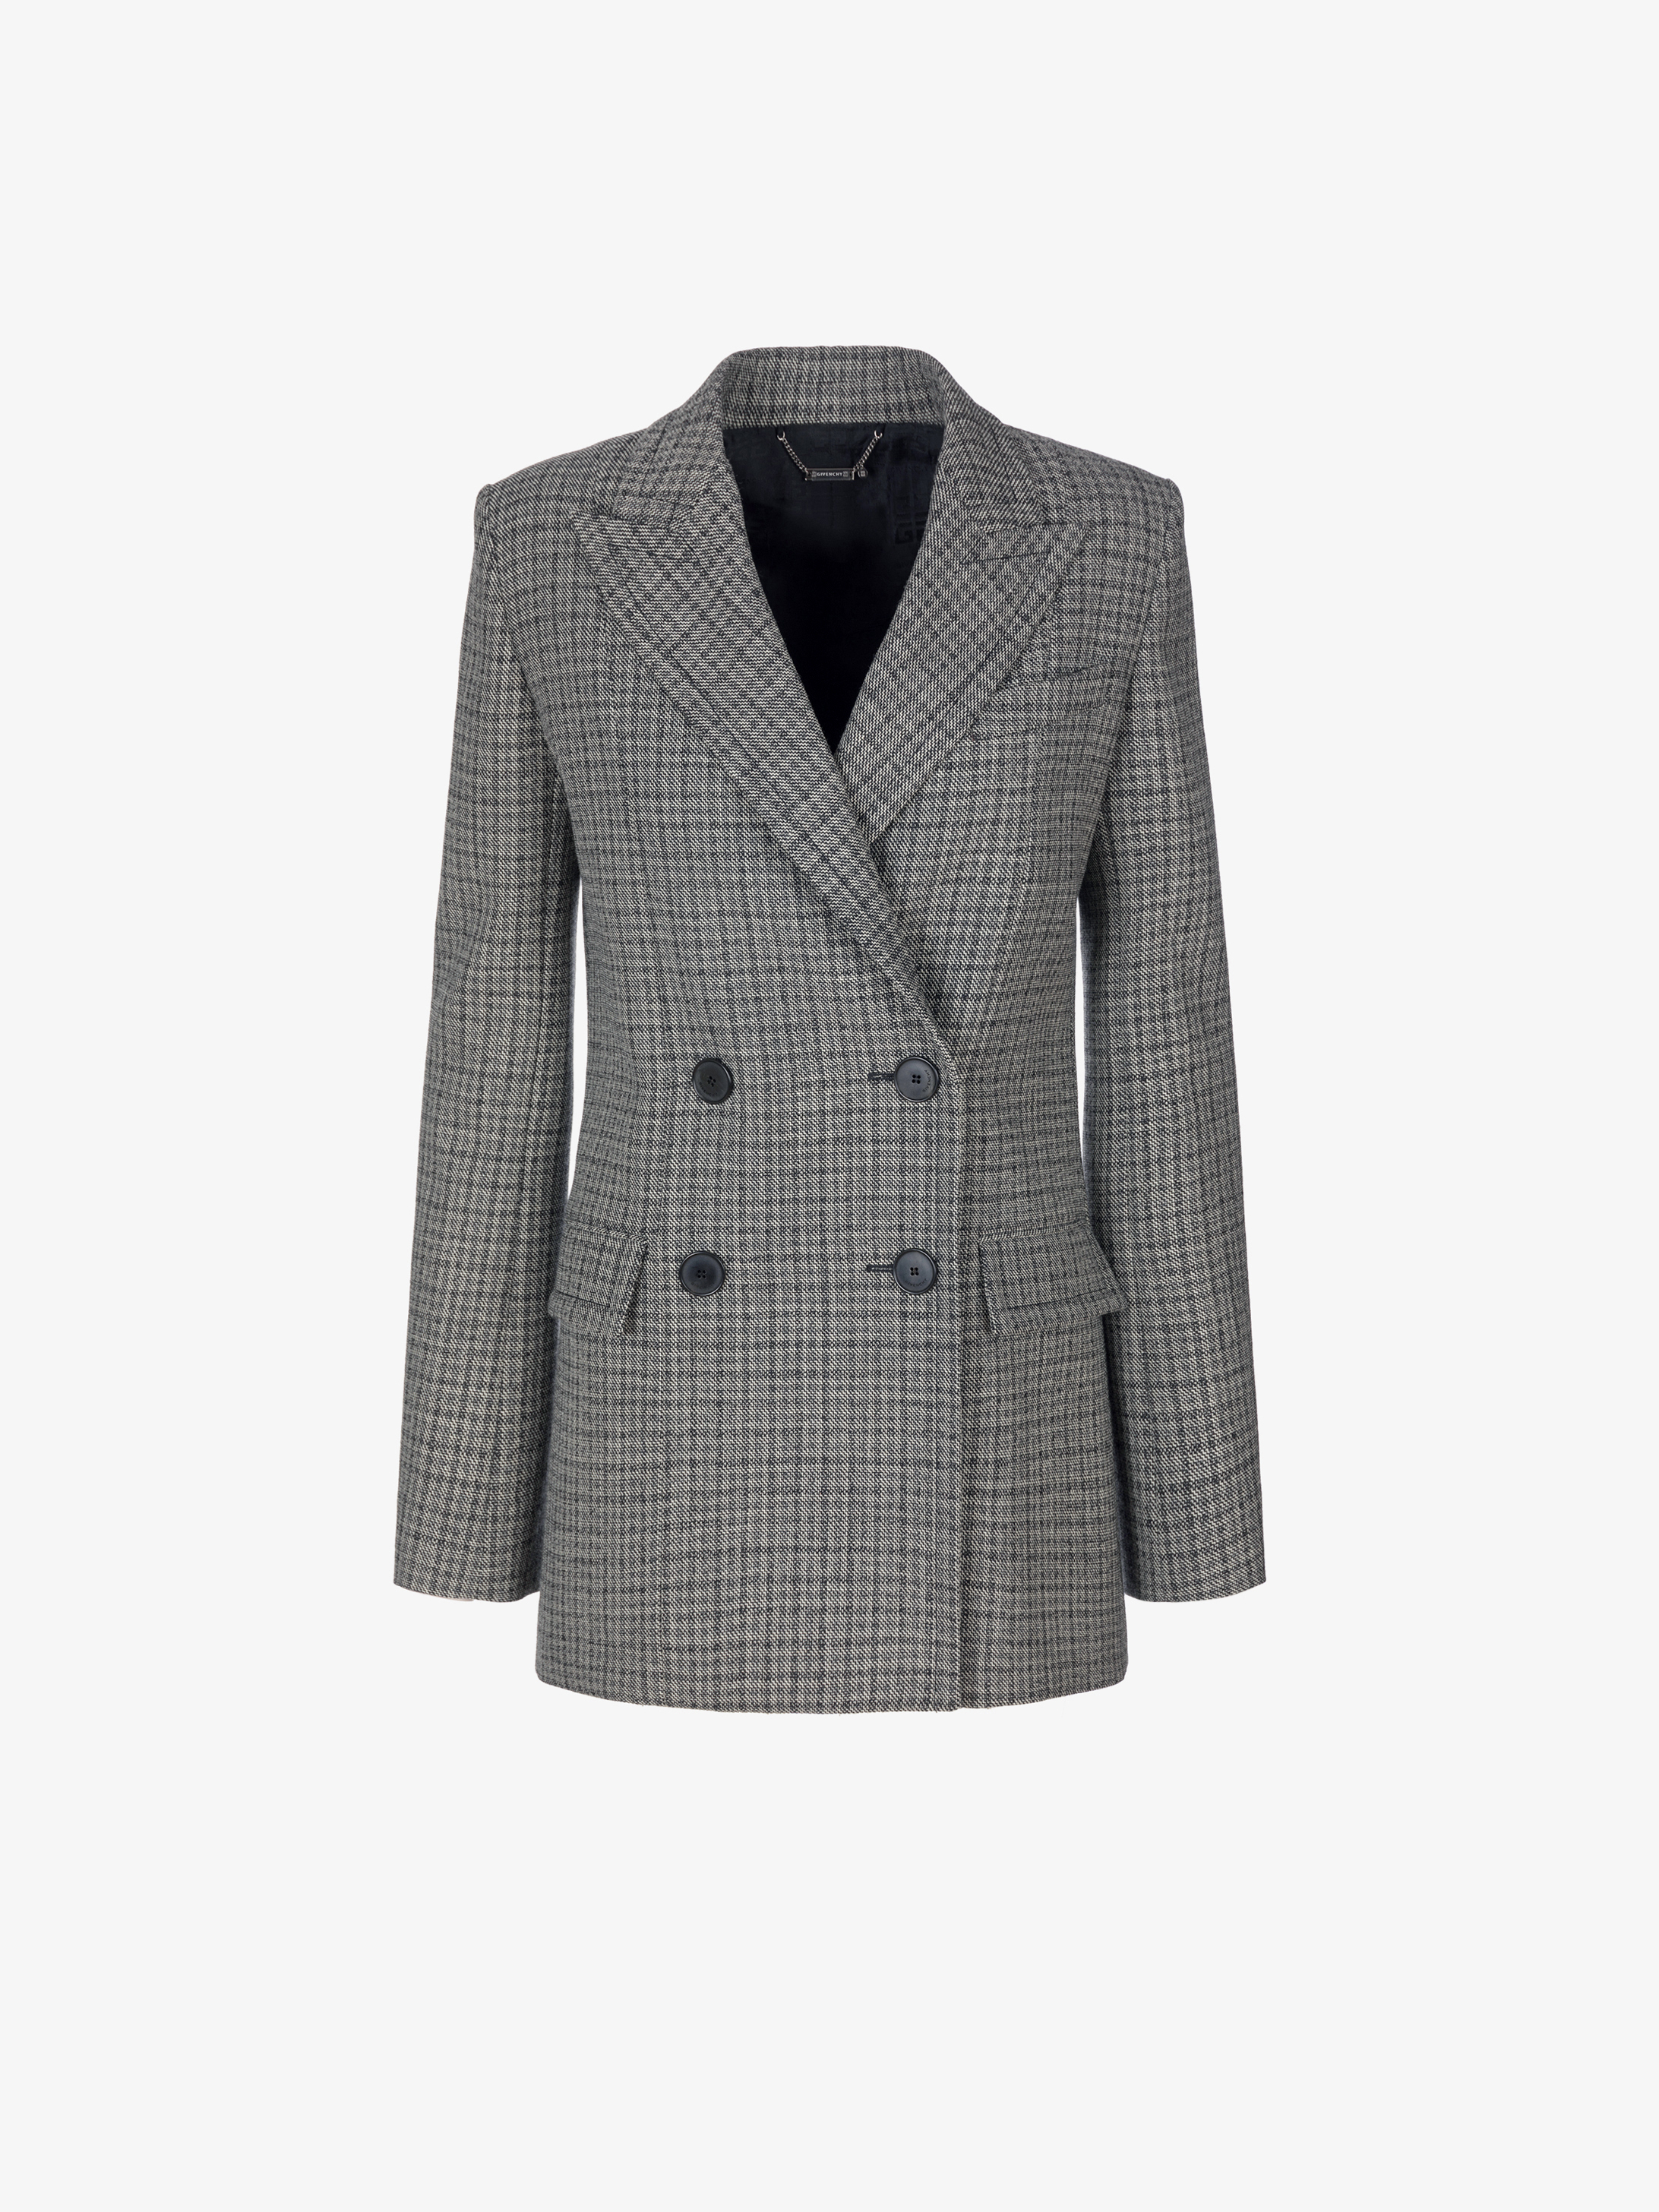 Double breasted jacket in prince of wales wool